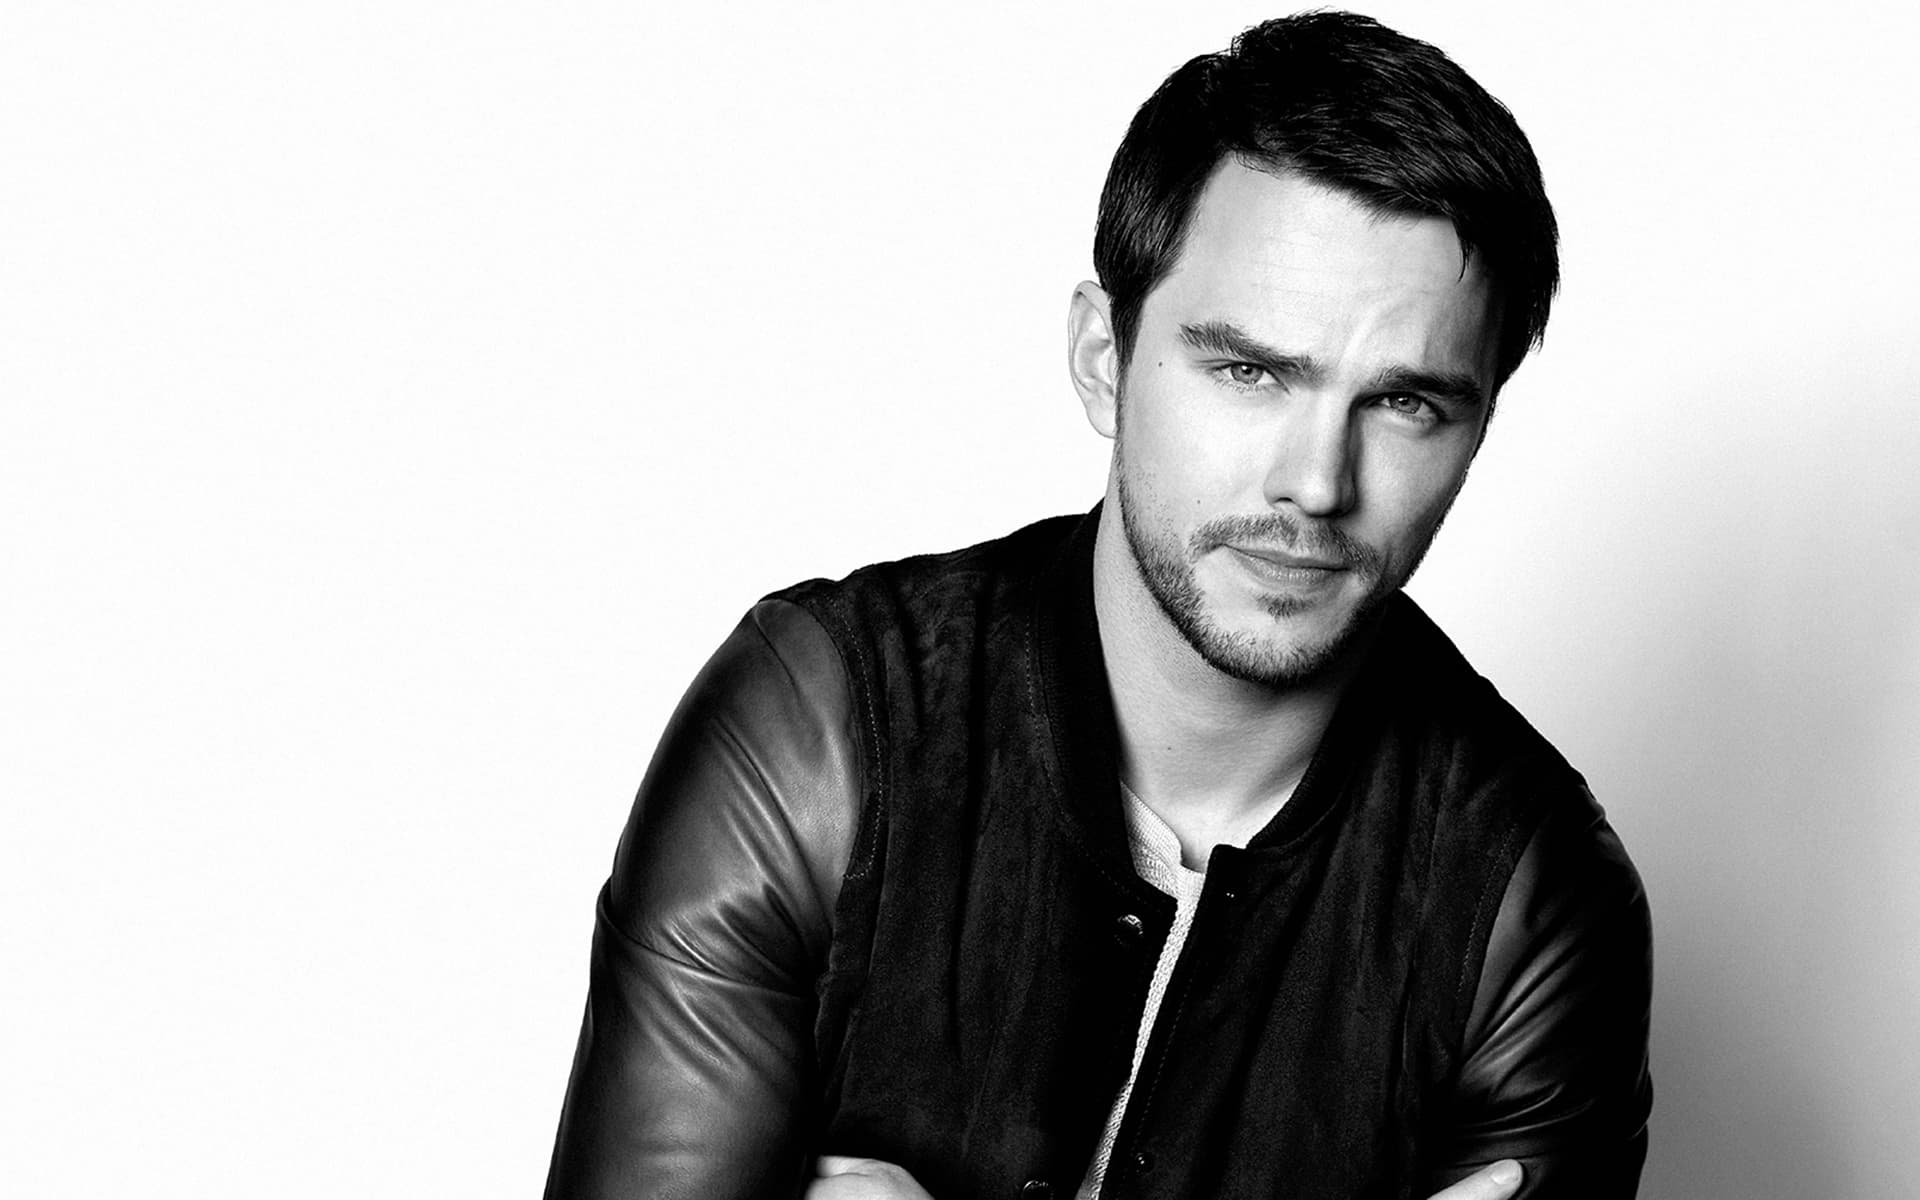 monochrome nicholas hoult wallpaper 55789